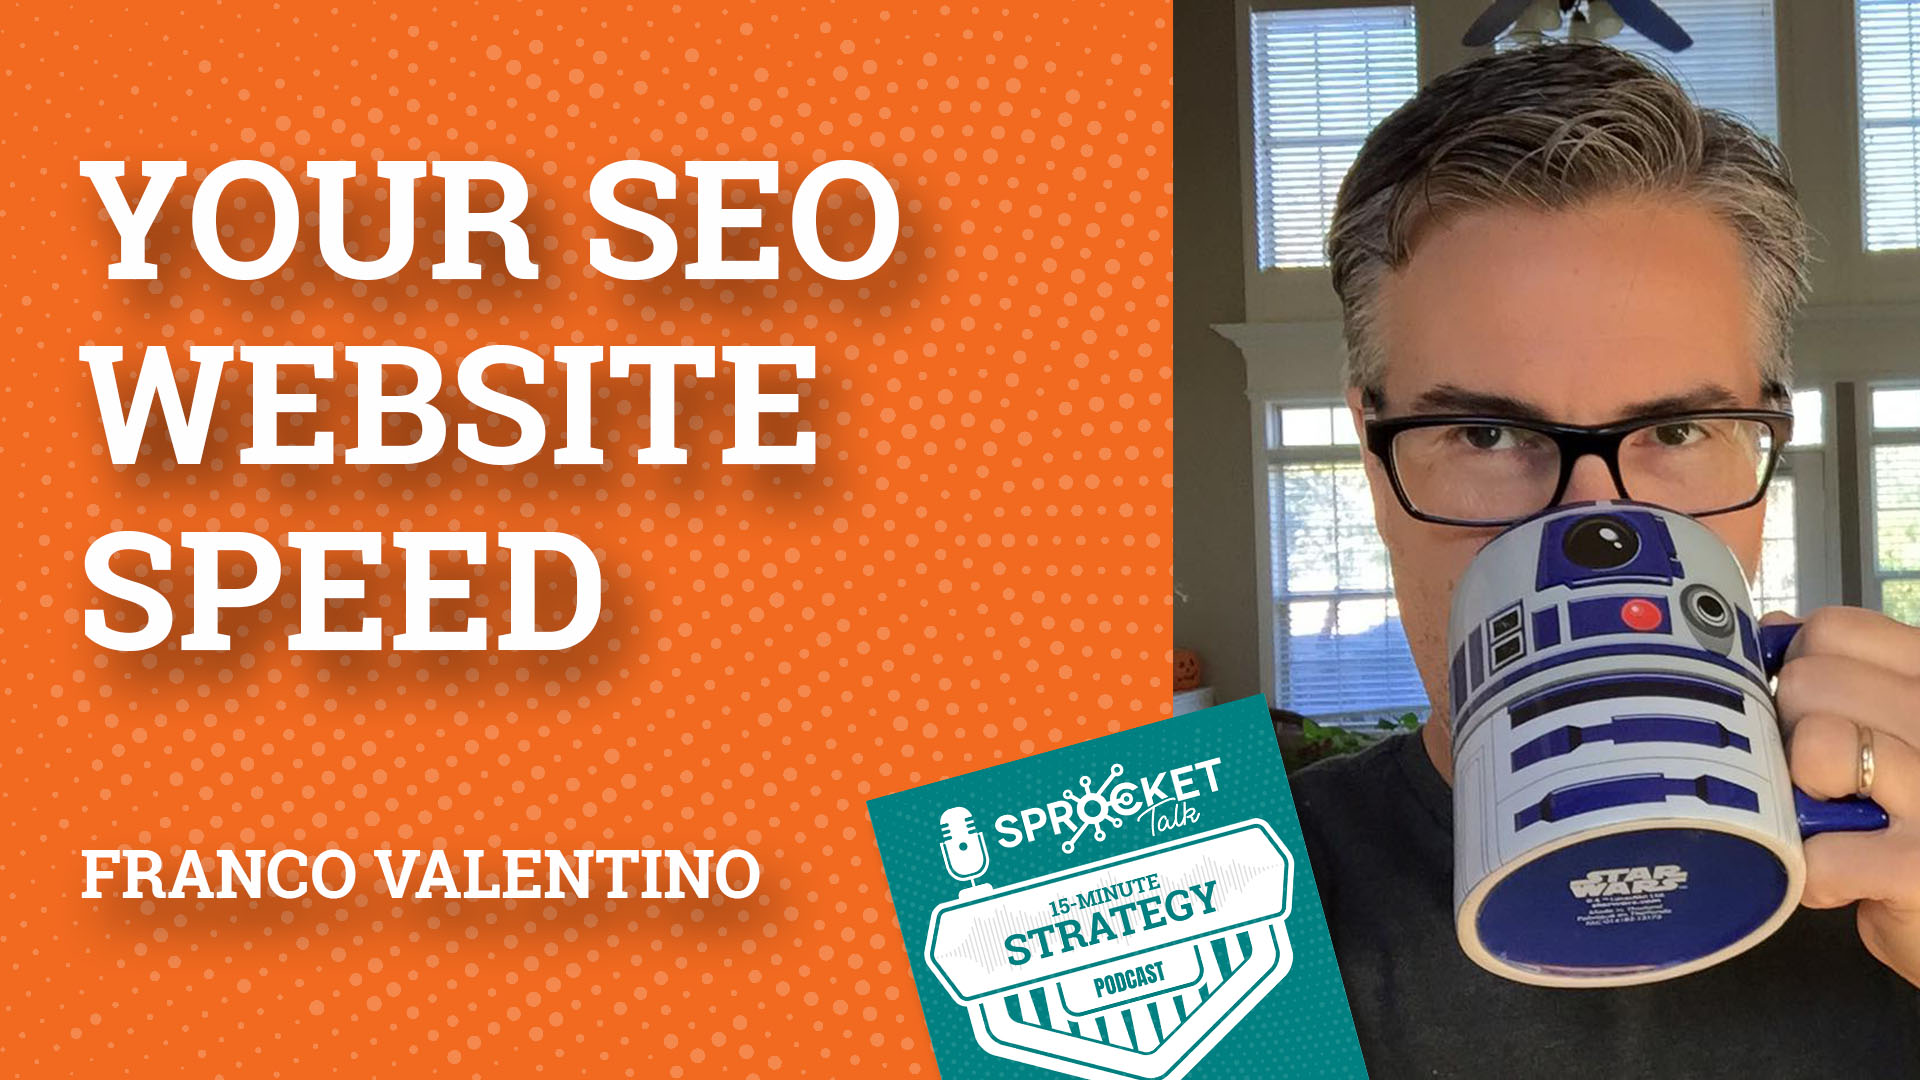 Franco Valentino on Website Speed as an SEO & Business Strategy | 15-Minute Strategy Podcast